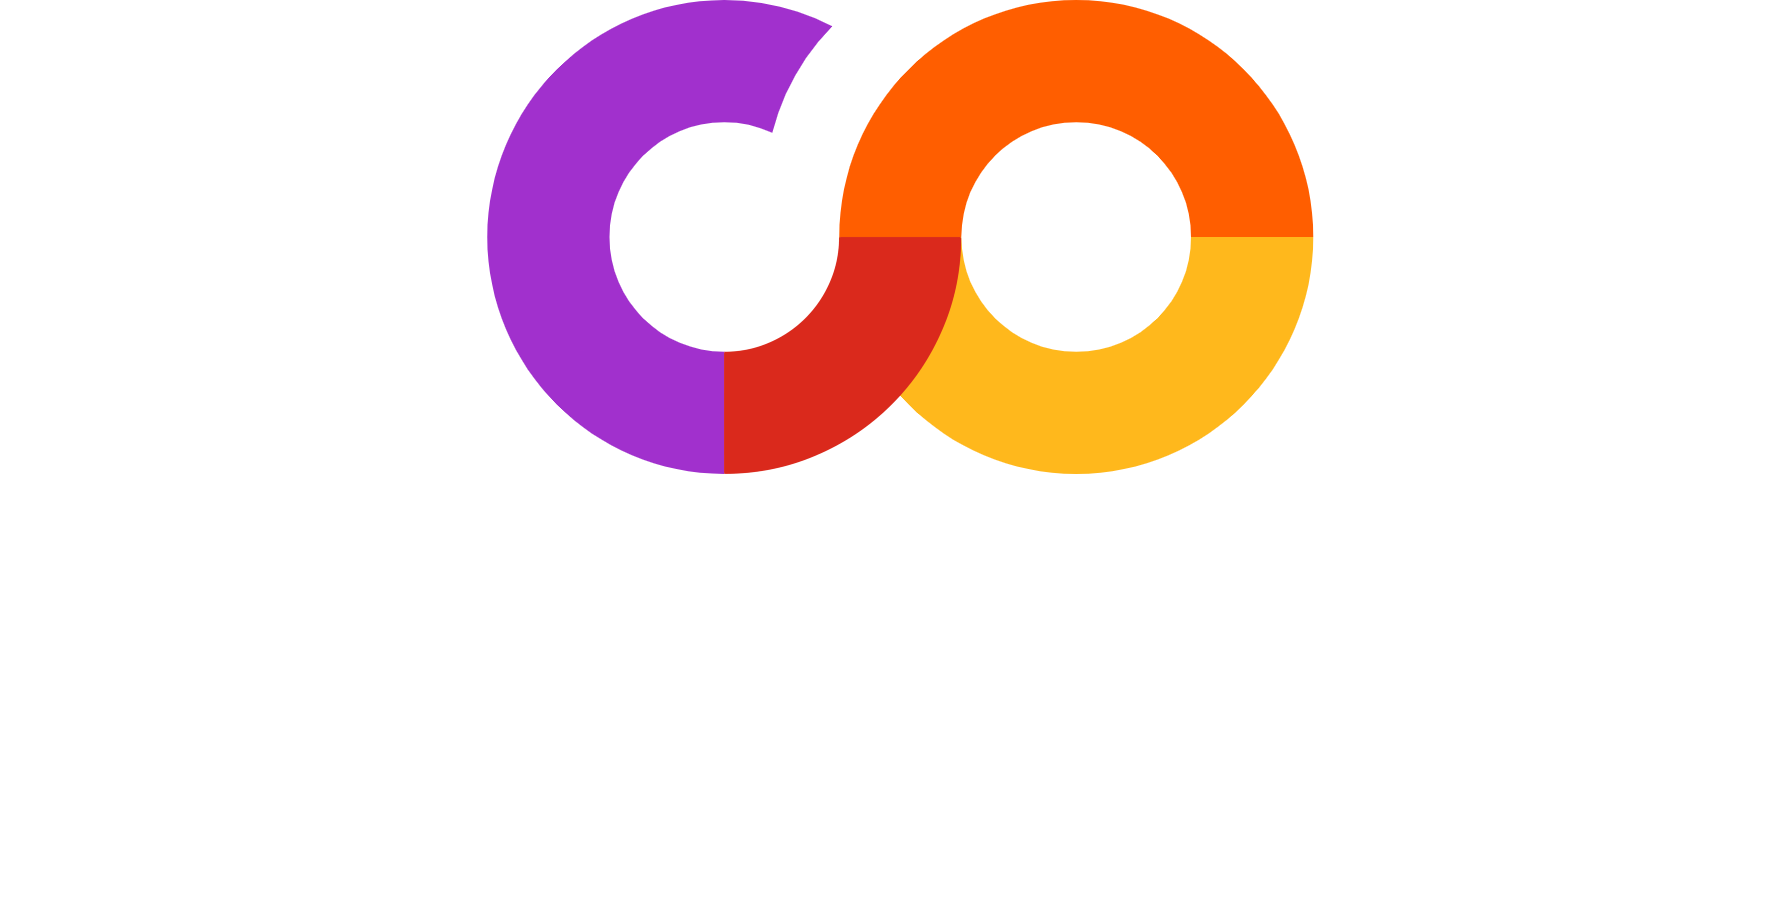 [[YEAR]] Co-wheels